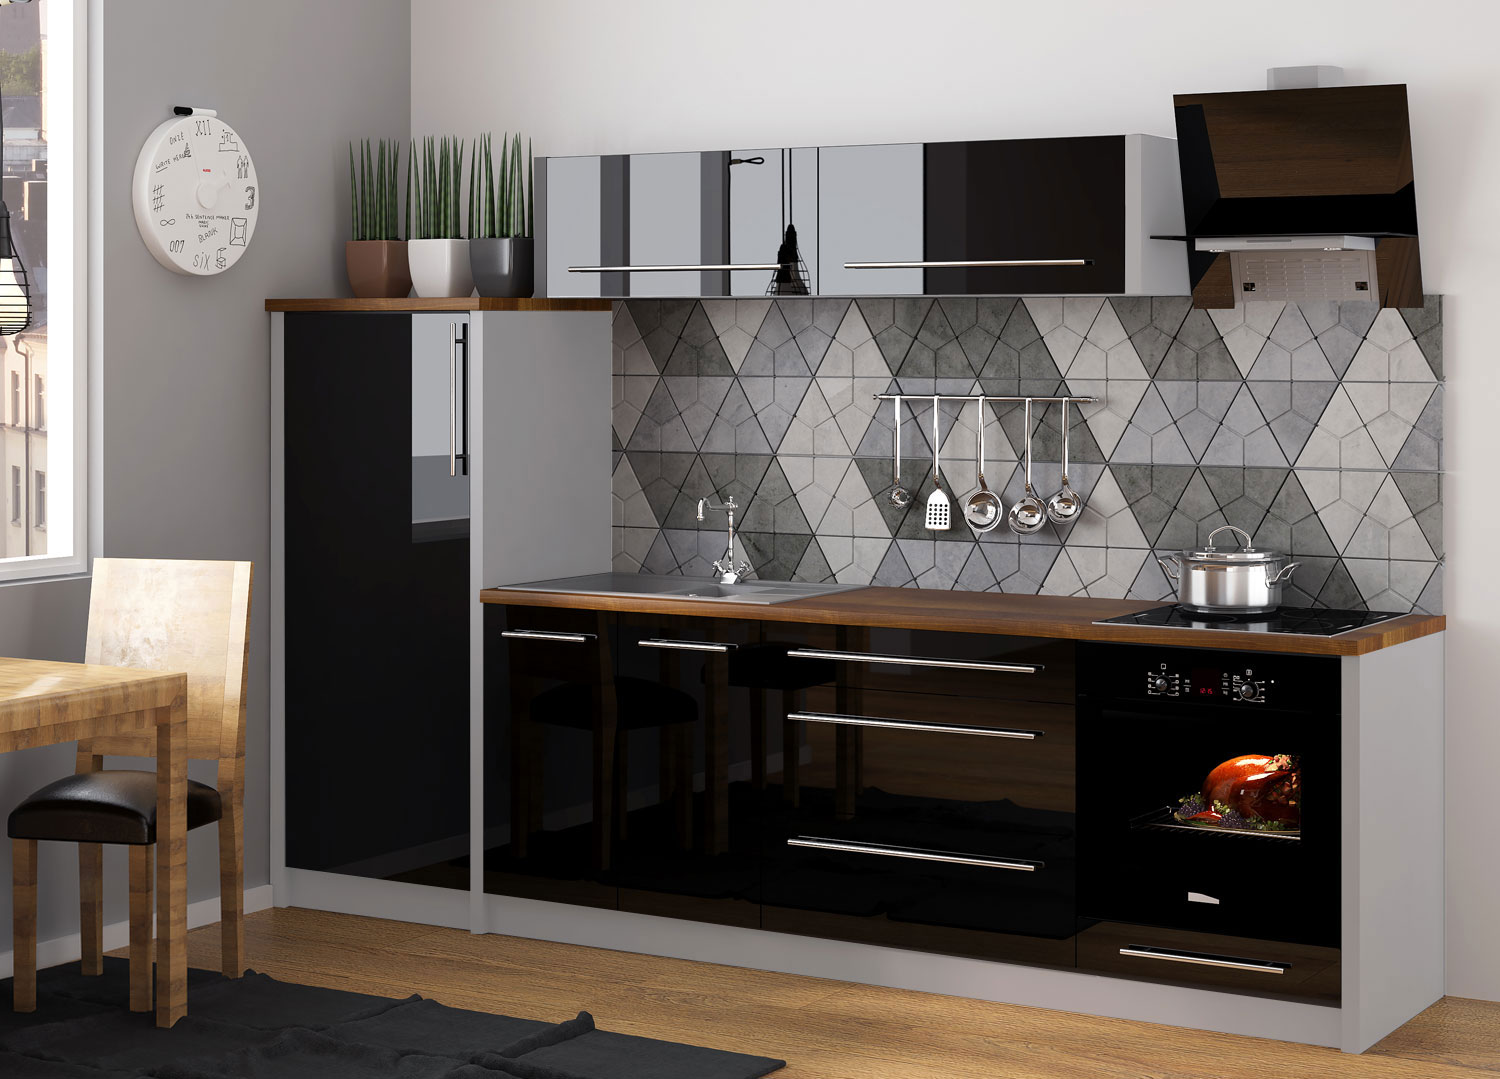 k chenzeile k che 260cm grau schwarz hochglanz neu kaufen bei feldmann wohnen gmbh. Black Bedroom Furniture Sets. Home Design Ideas